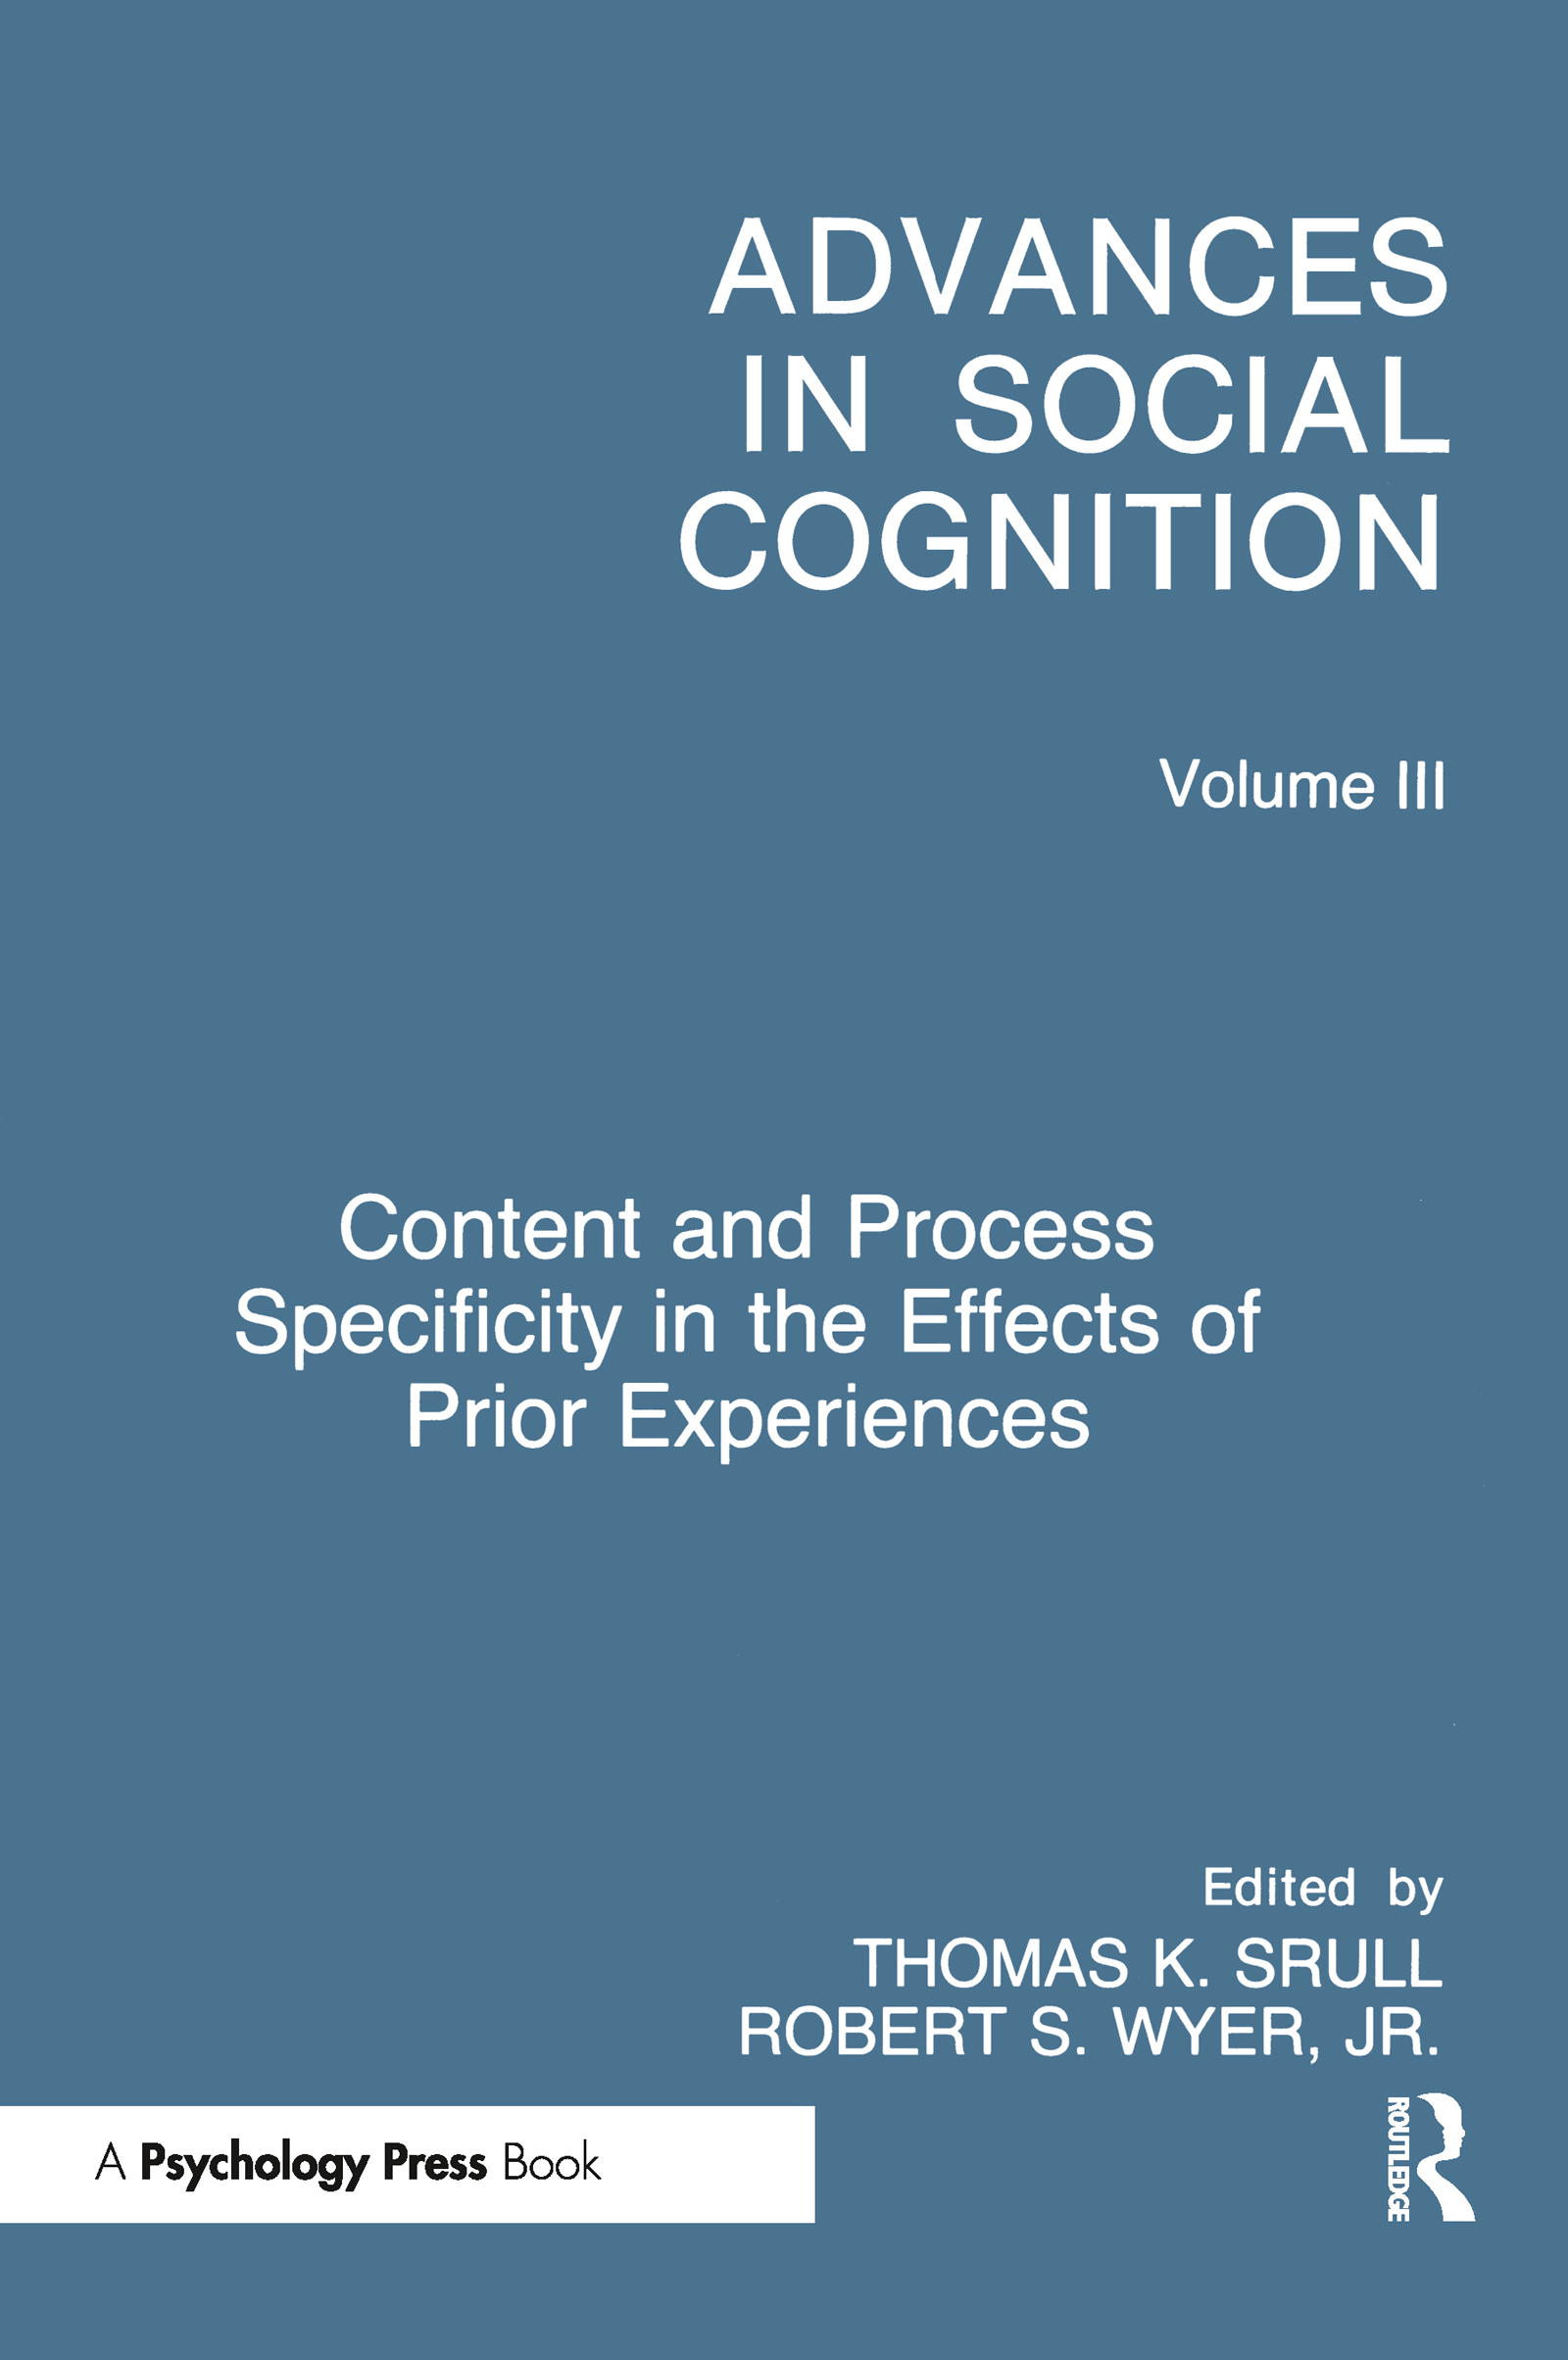 Content and Process Specificity in the Effects of Prior Experiences: Advances in Social Cognition, Volume III (Paperback) book cover